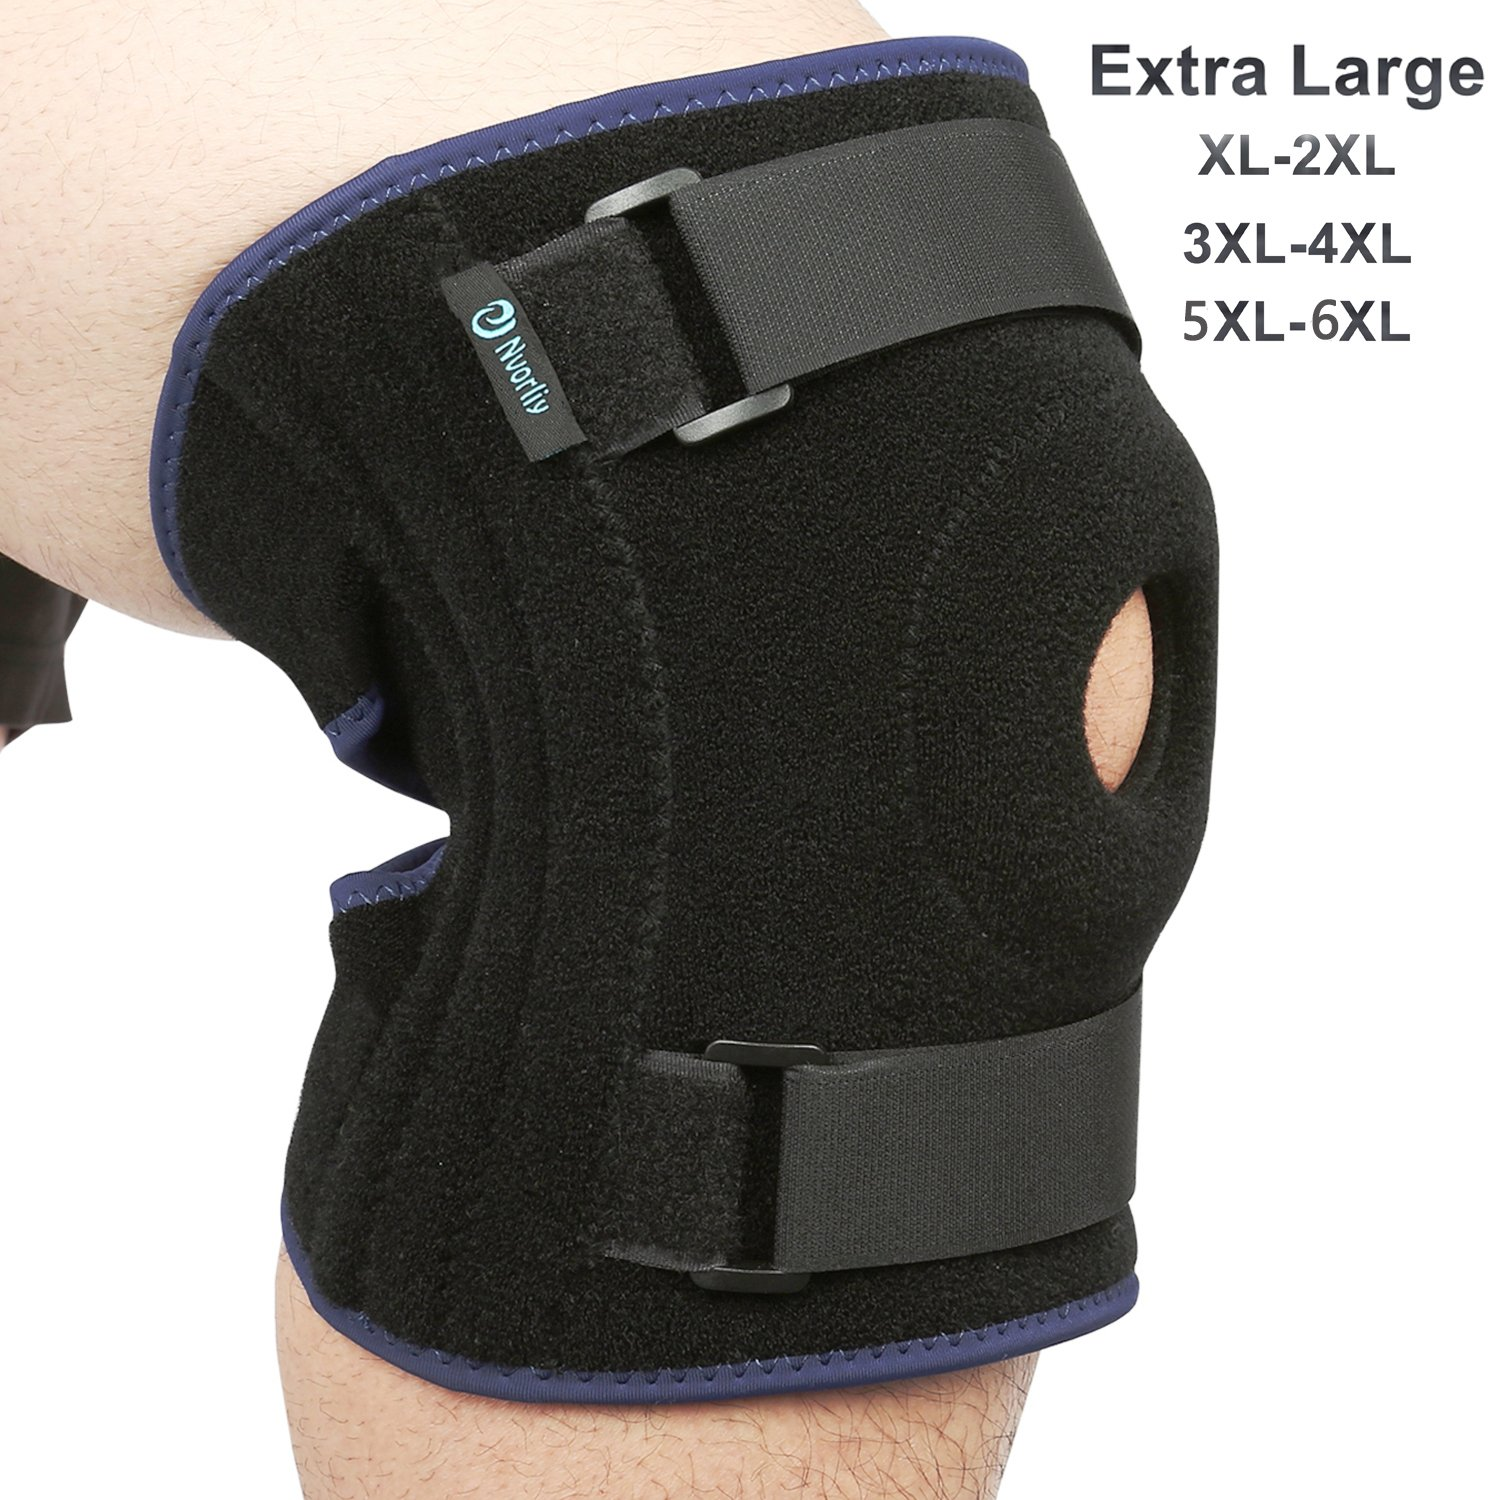 Nvorliy Plus Size Knee Brace XL 2XL Extra Large Open-Patella Stabilizer Breathable Neoprene Support for Arthritis, Acl, Running, Pain Relief, Meniscus Tear, Post-Surgery Recovery, Fit Men and Women by Nvorliy